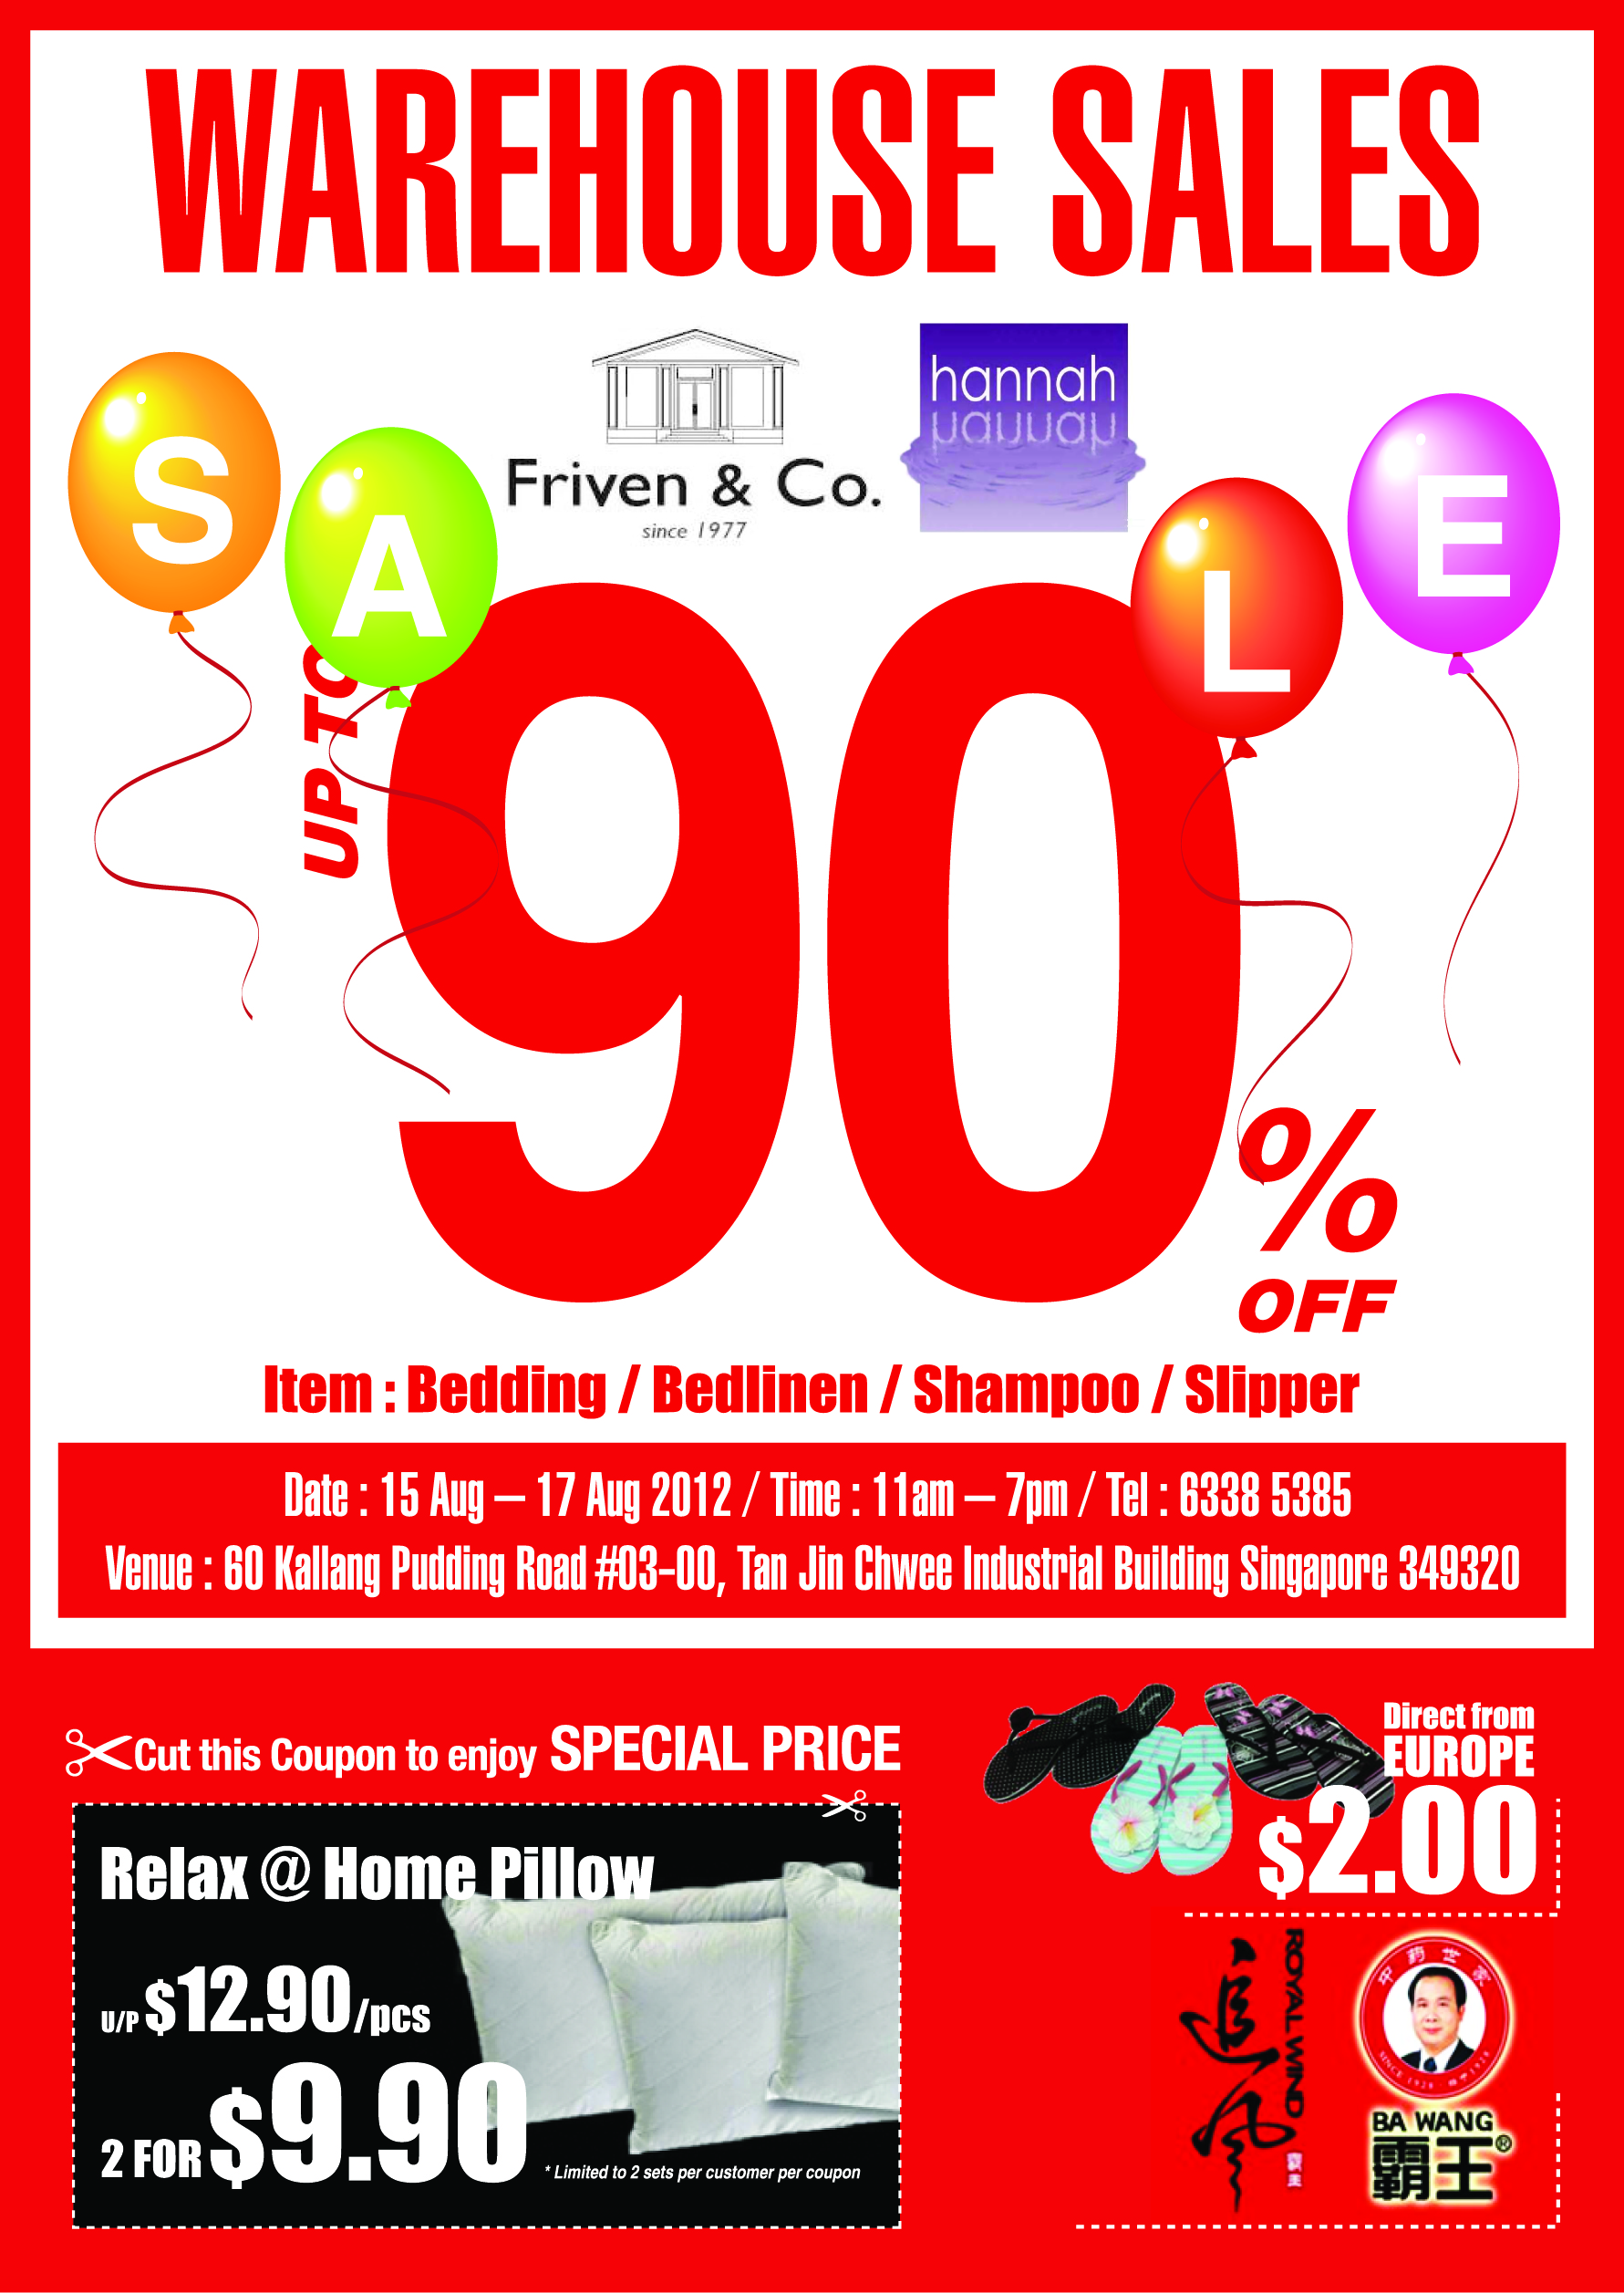 Friven & Co. Warehouse Sale